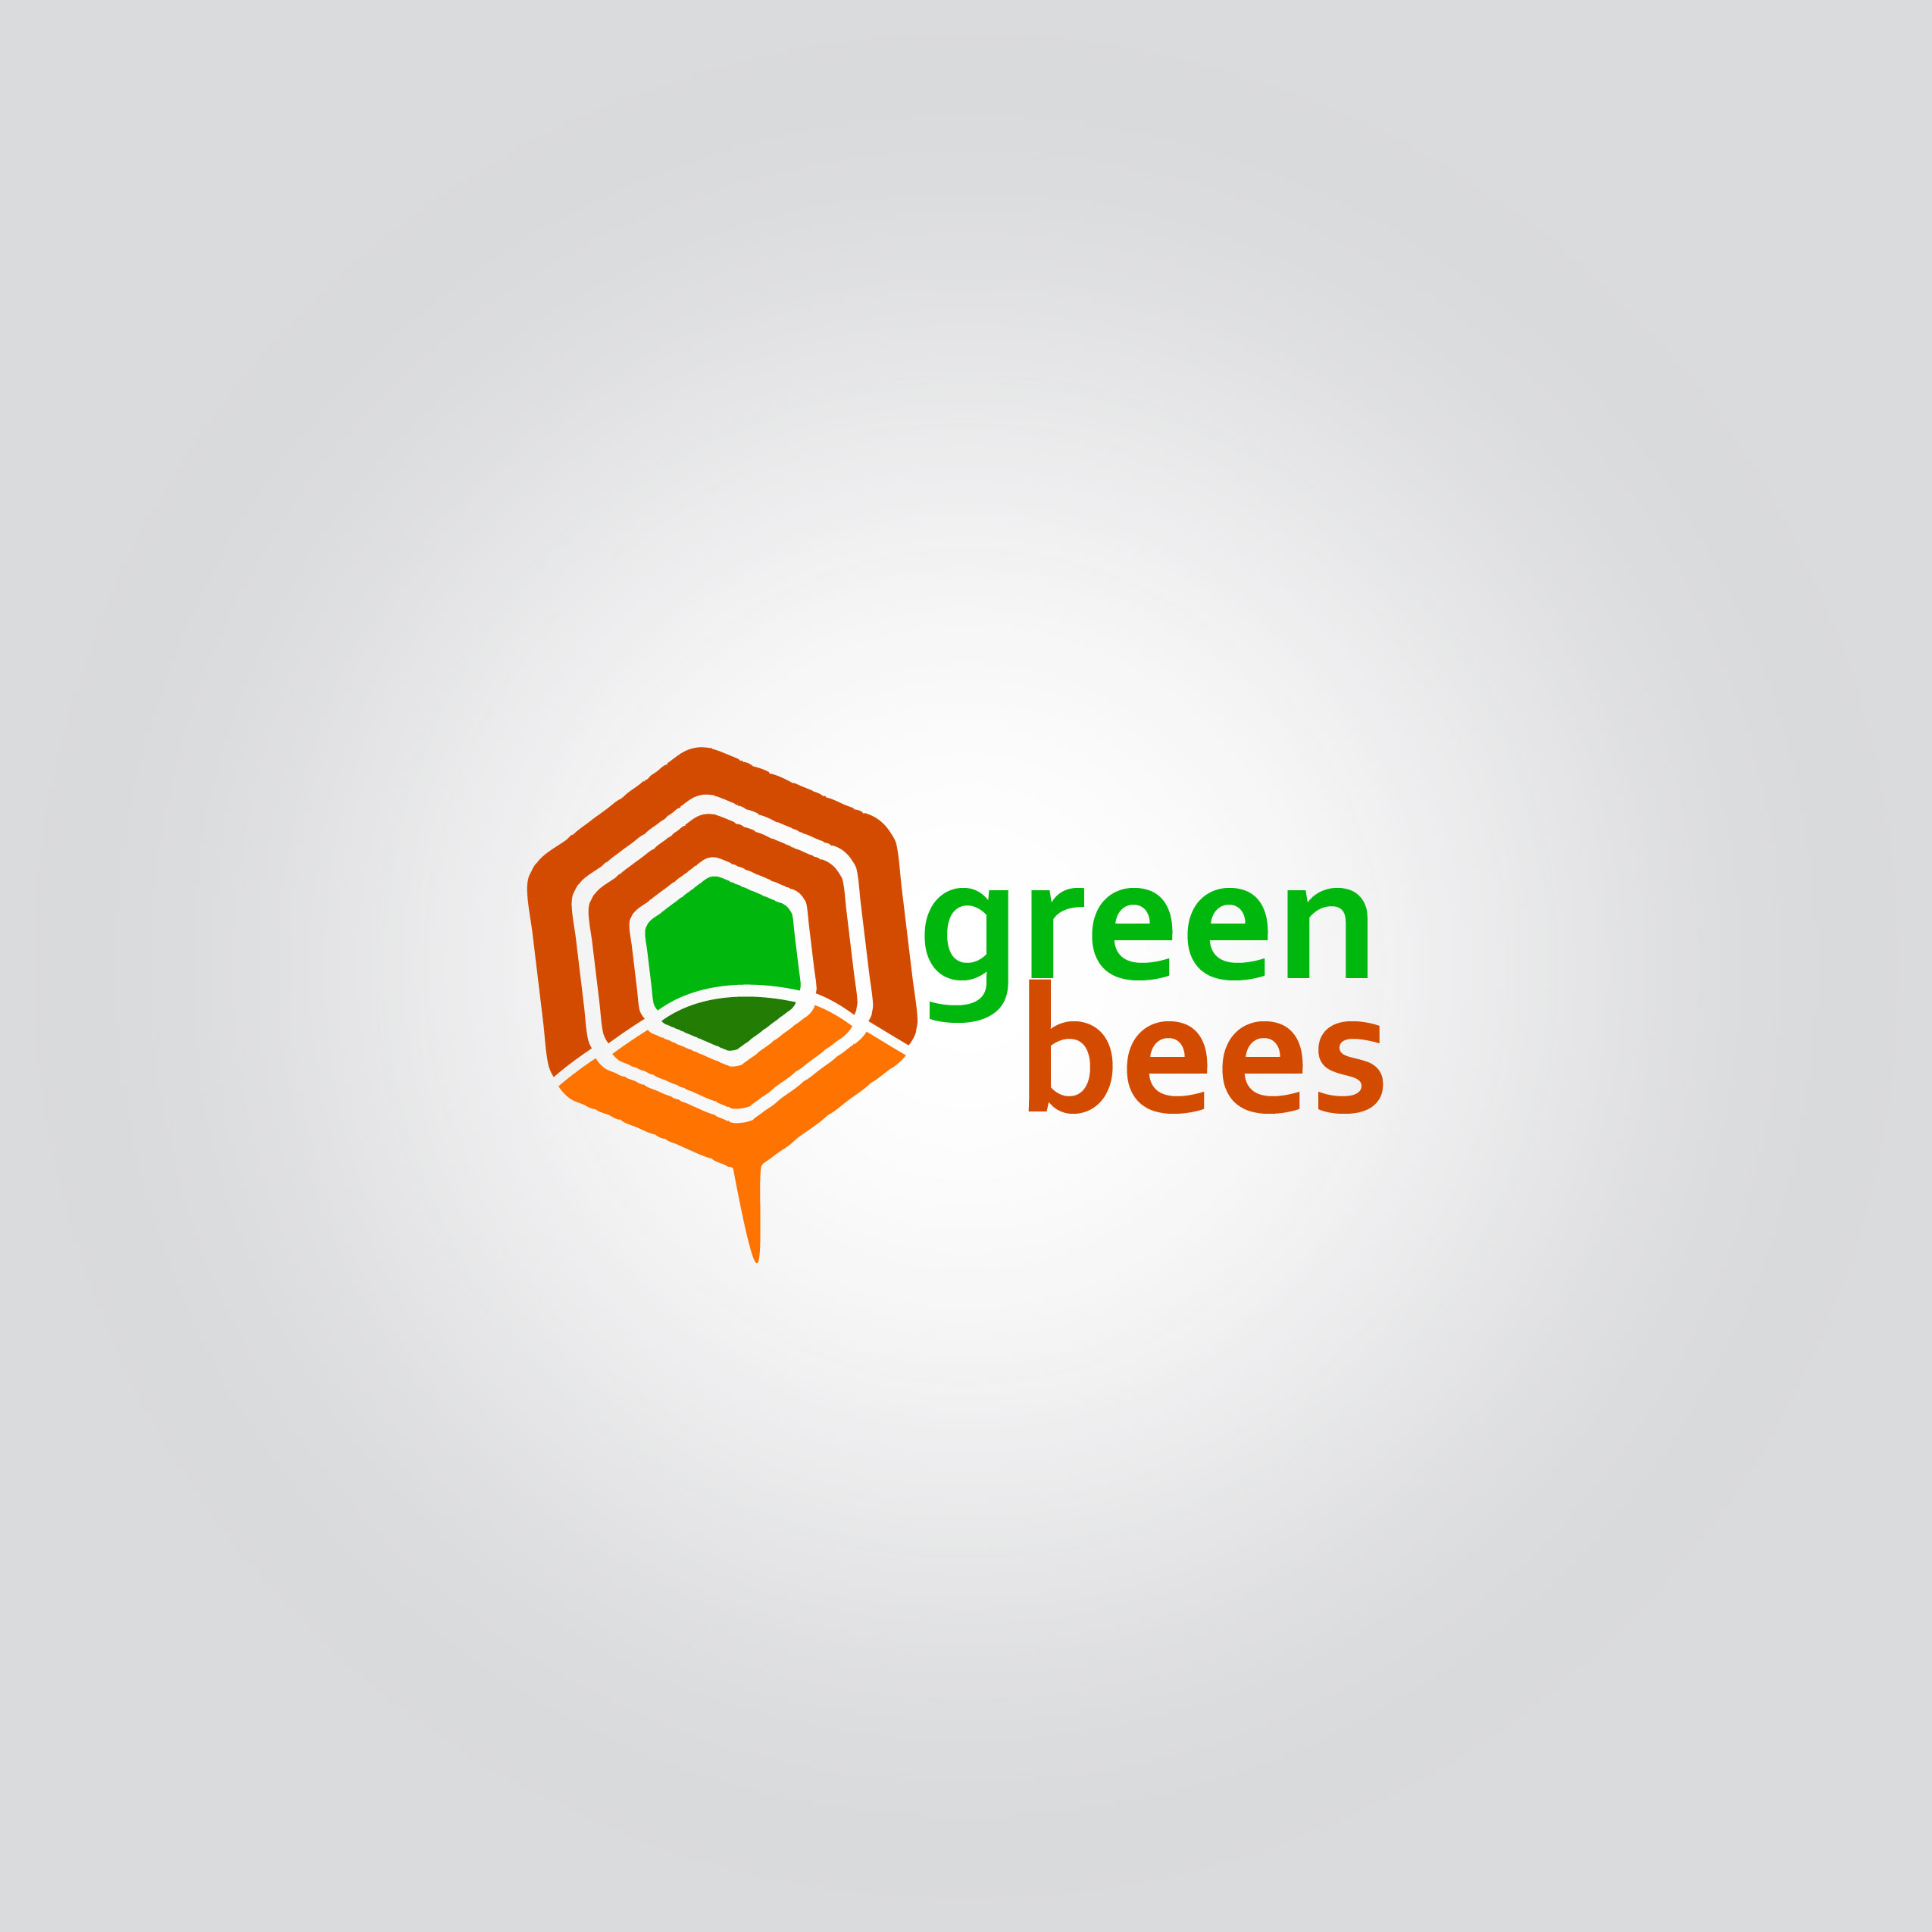 Logo Design by Joseph Lemuel Lacatan - Entry No. 102 in the Logo Design Contest Greenbees Logo Design.